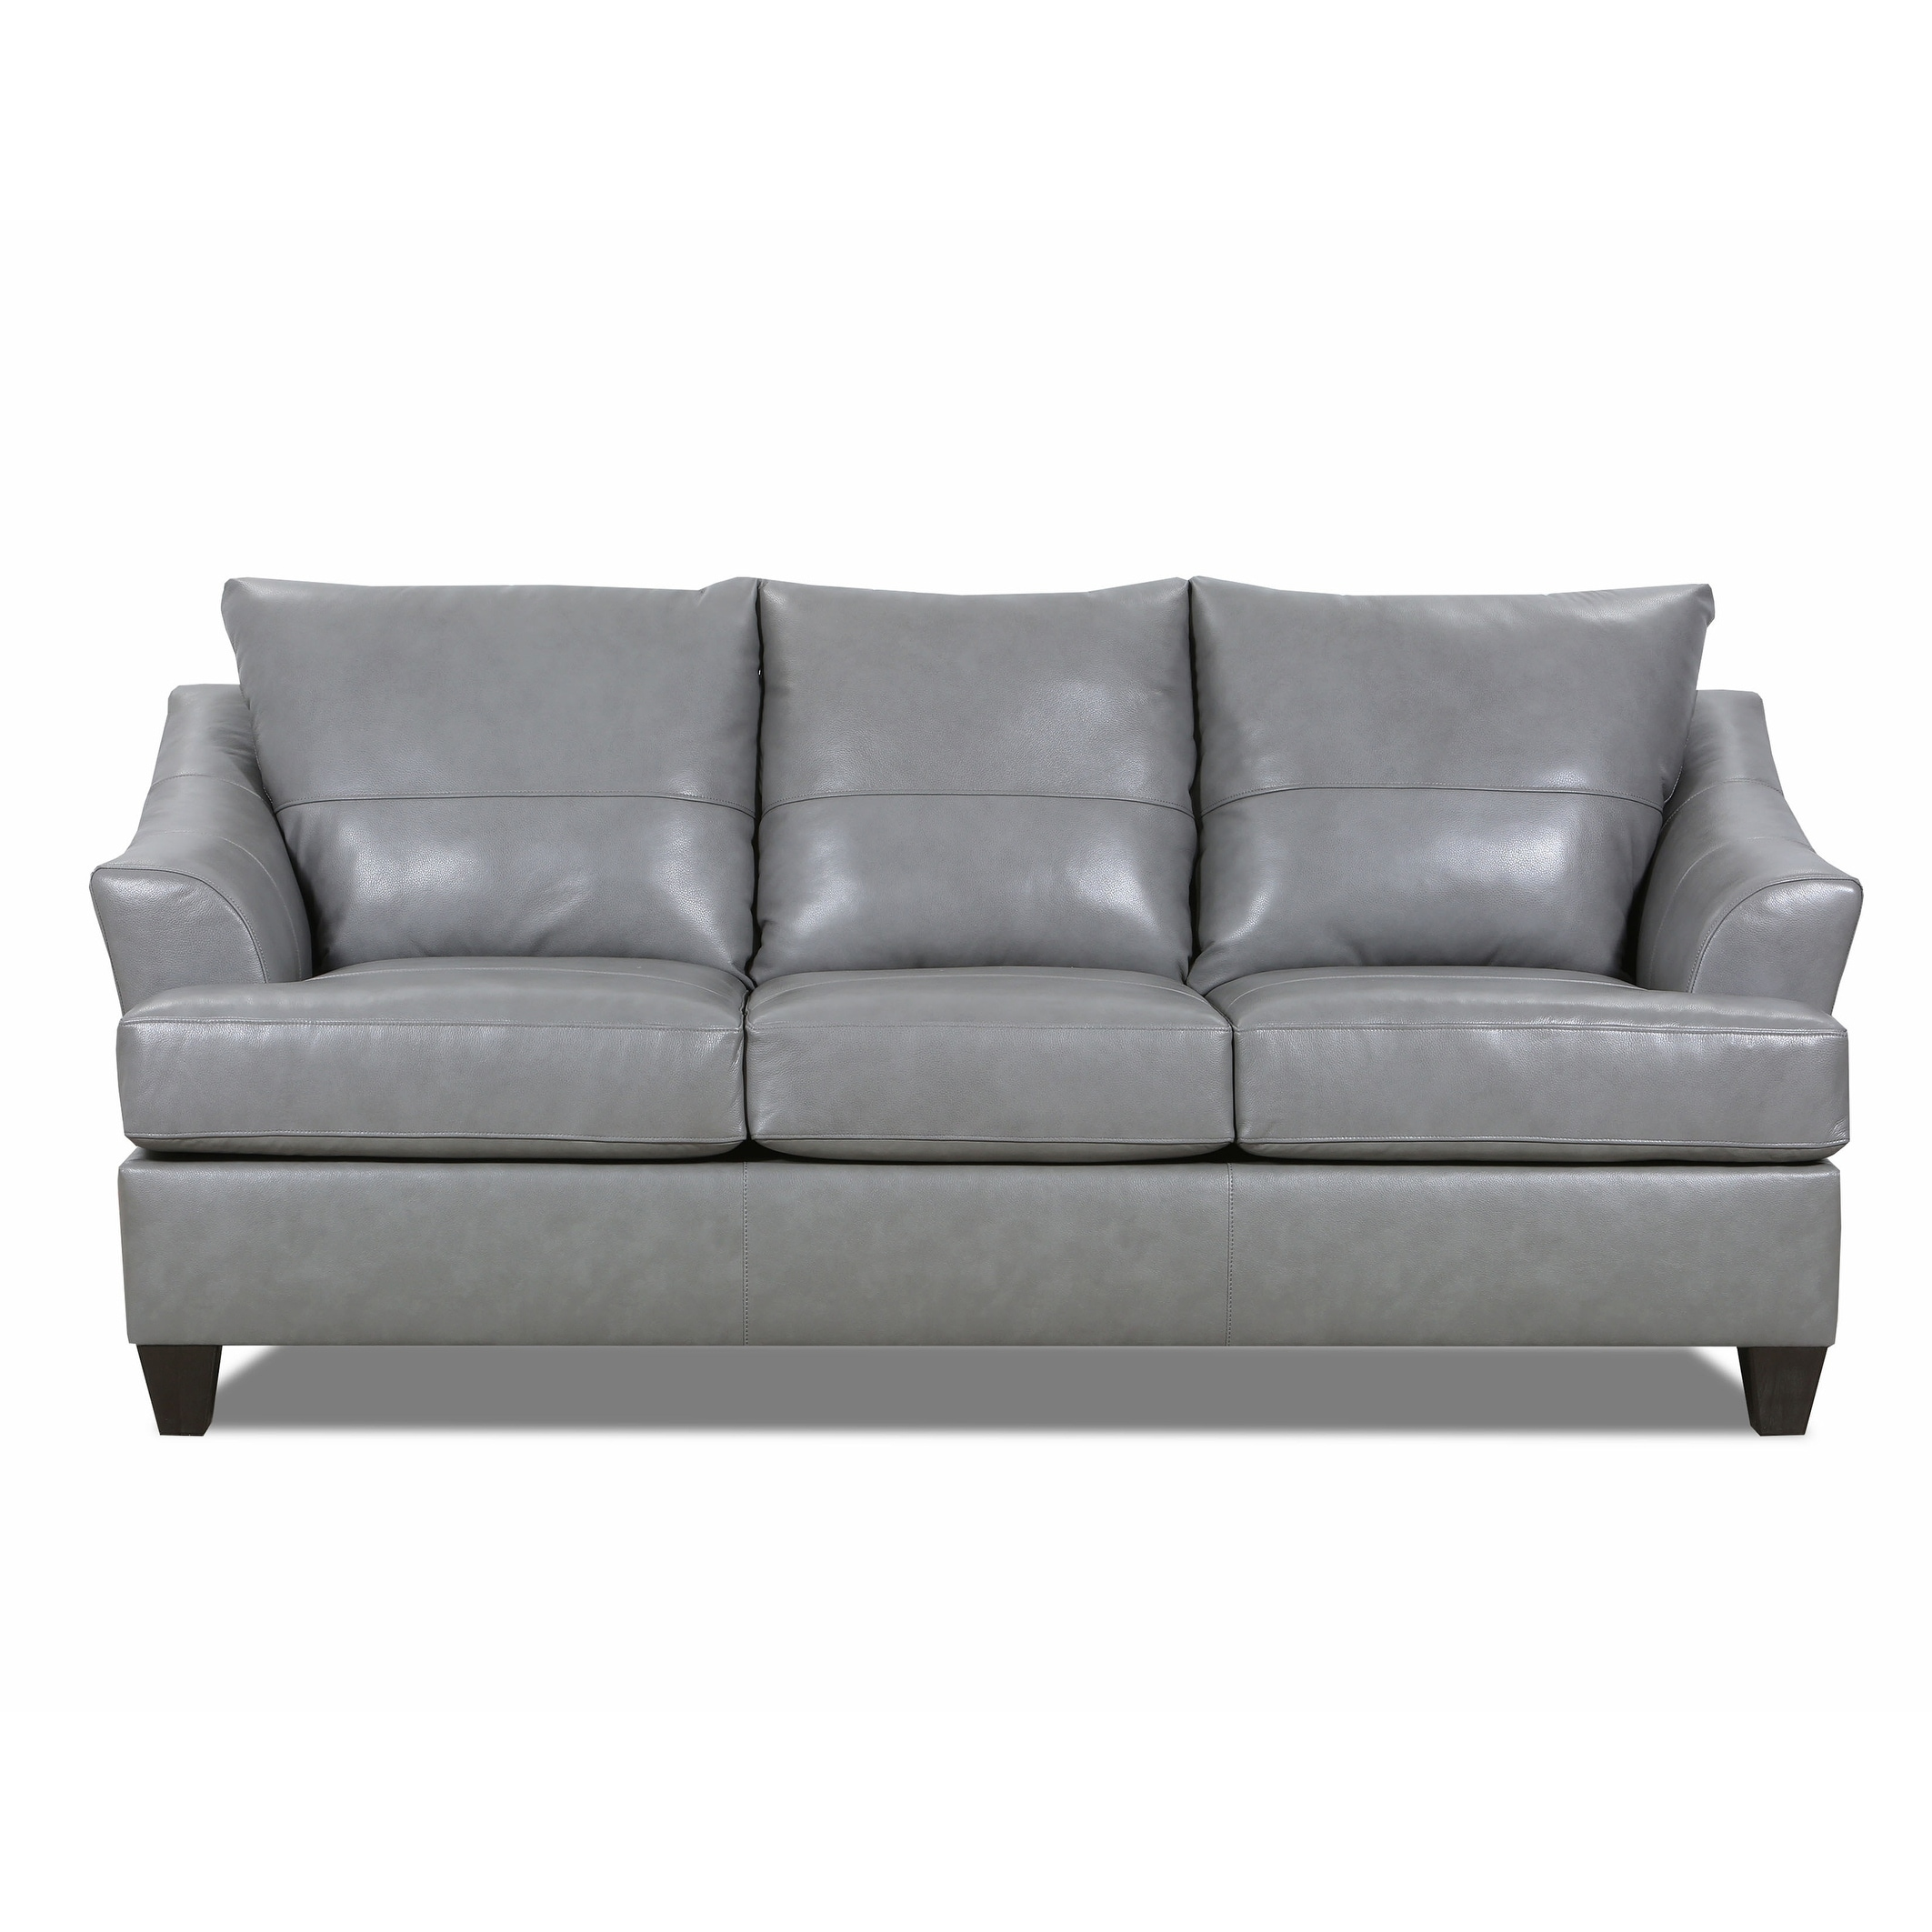 Judith Top Grain Leather Queen Sofa Sleeper